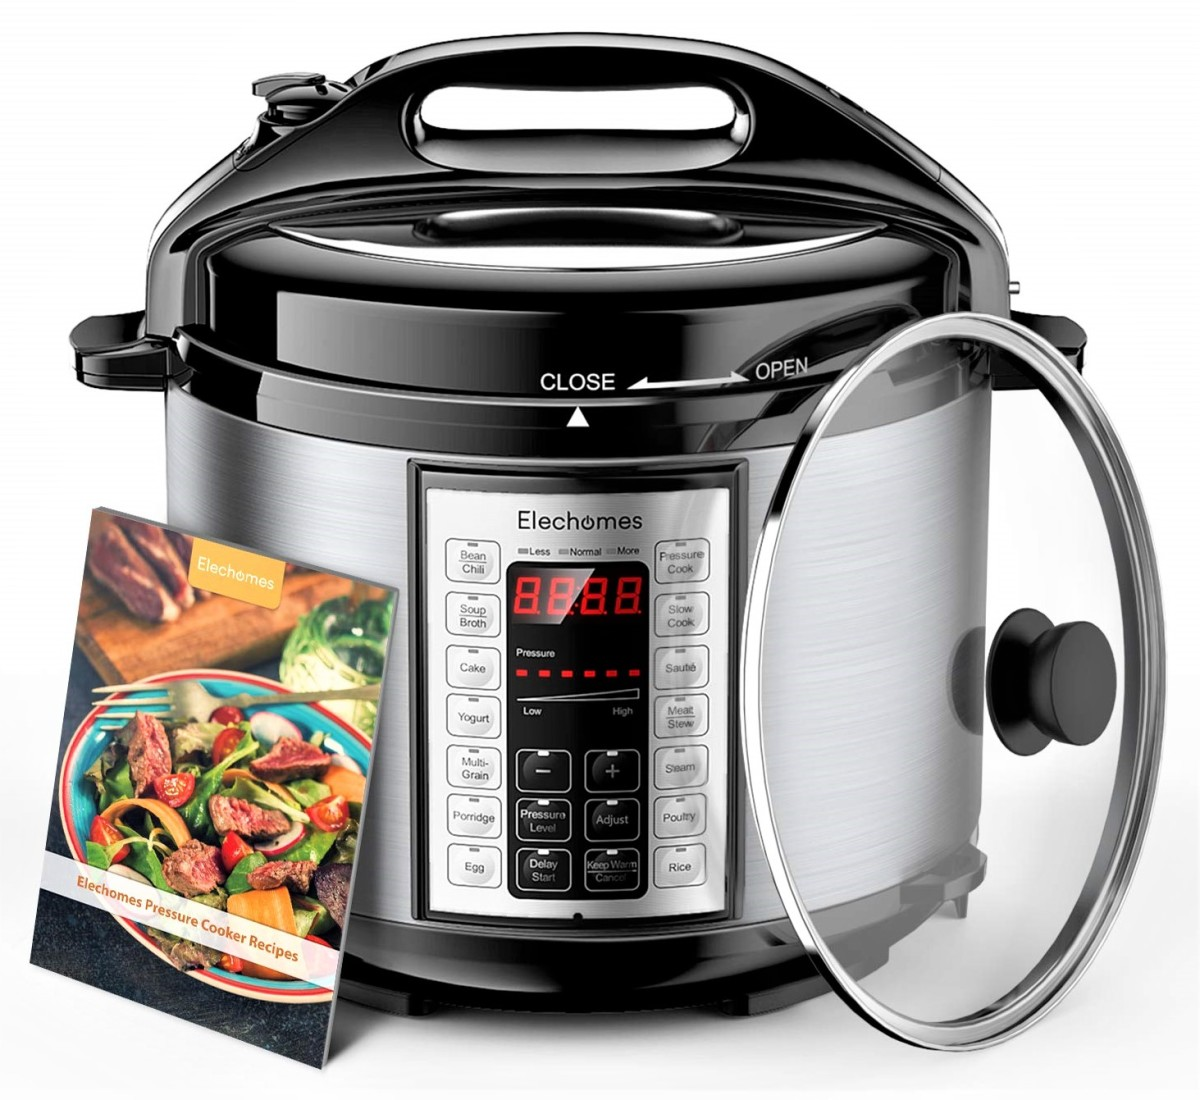 Elechomes 9-in-1 Electric Pressure Cooker: The Best Multi-Use Kitchen Appliance